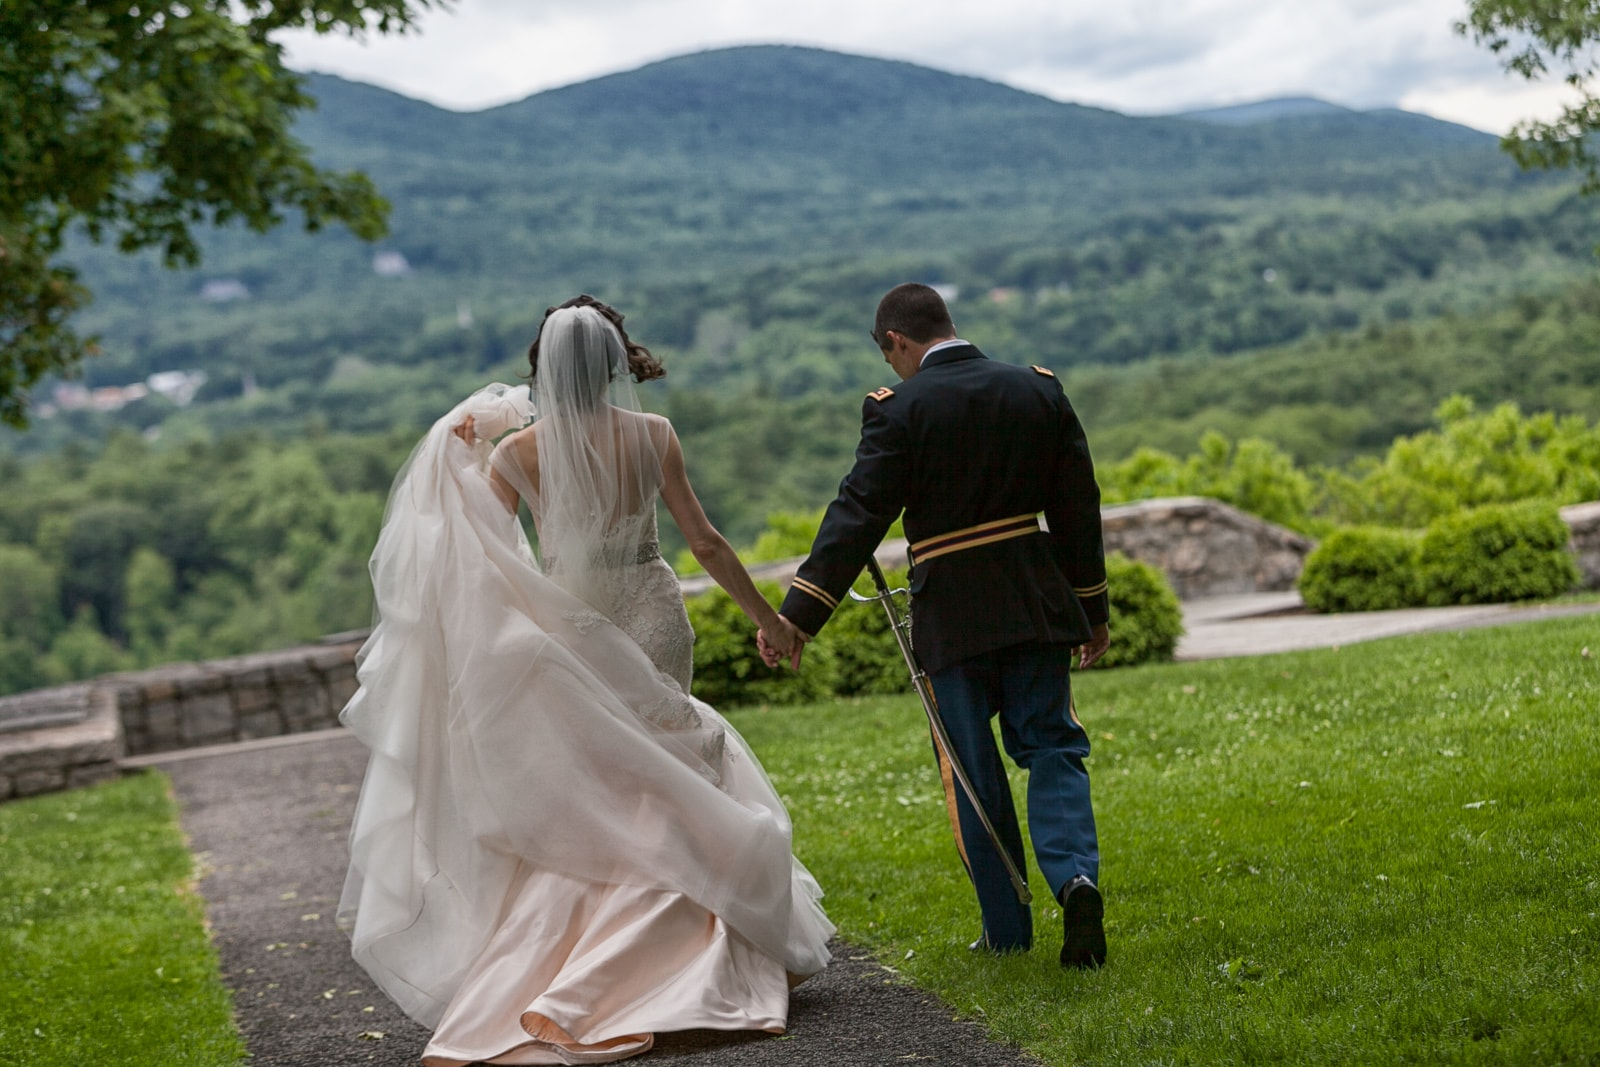 West Point Wedding at Cadet Chapel